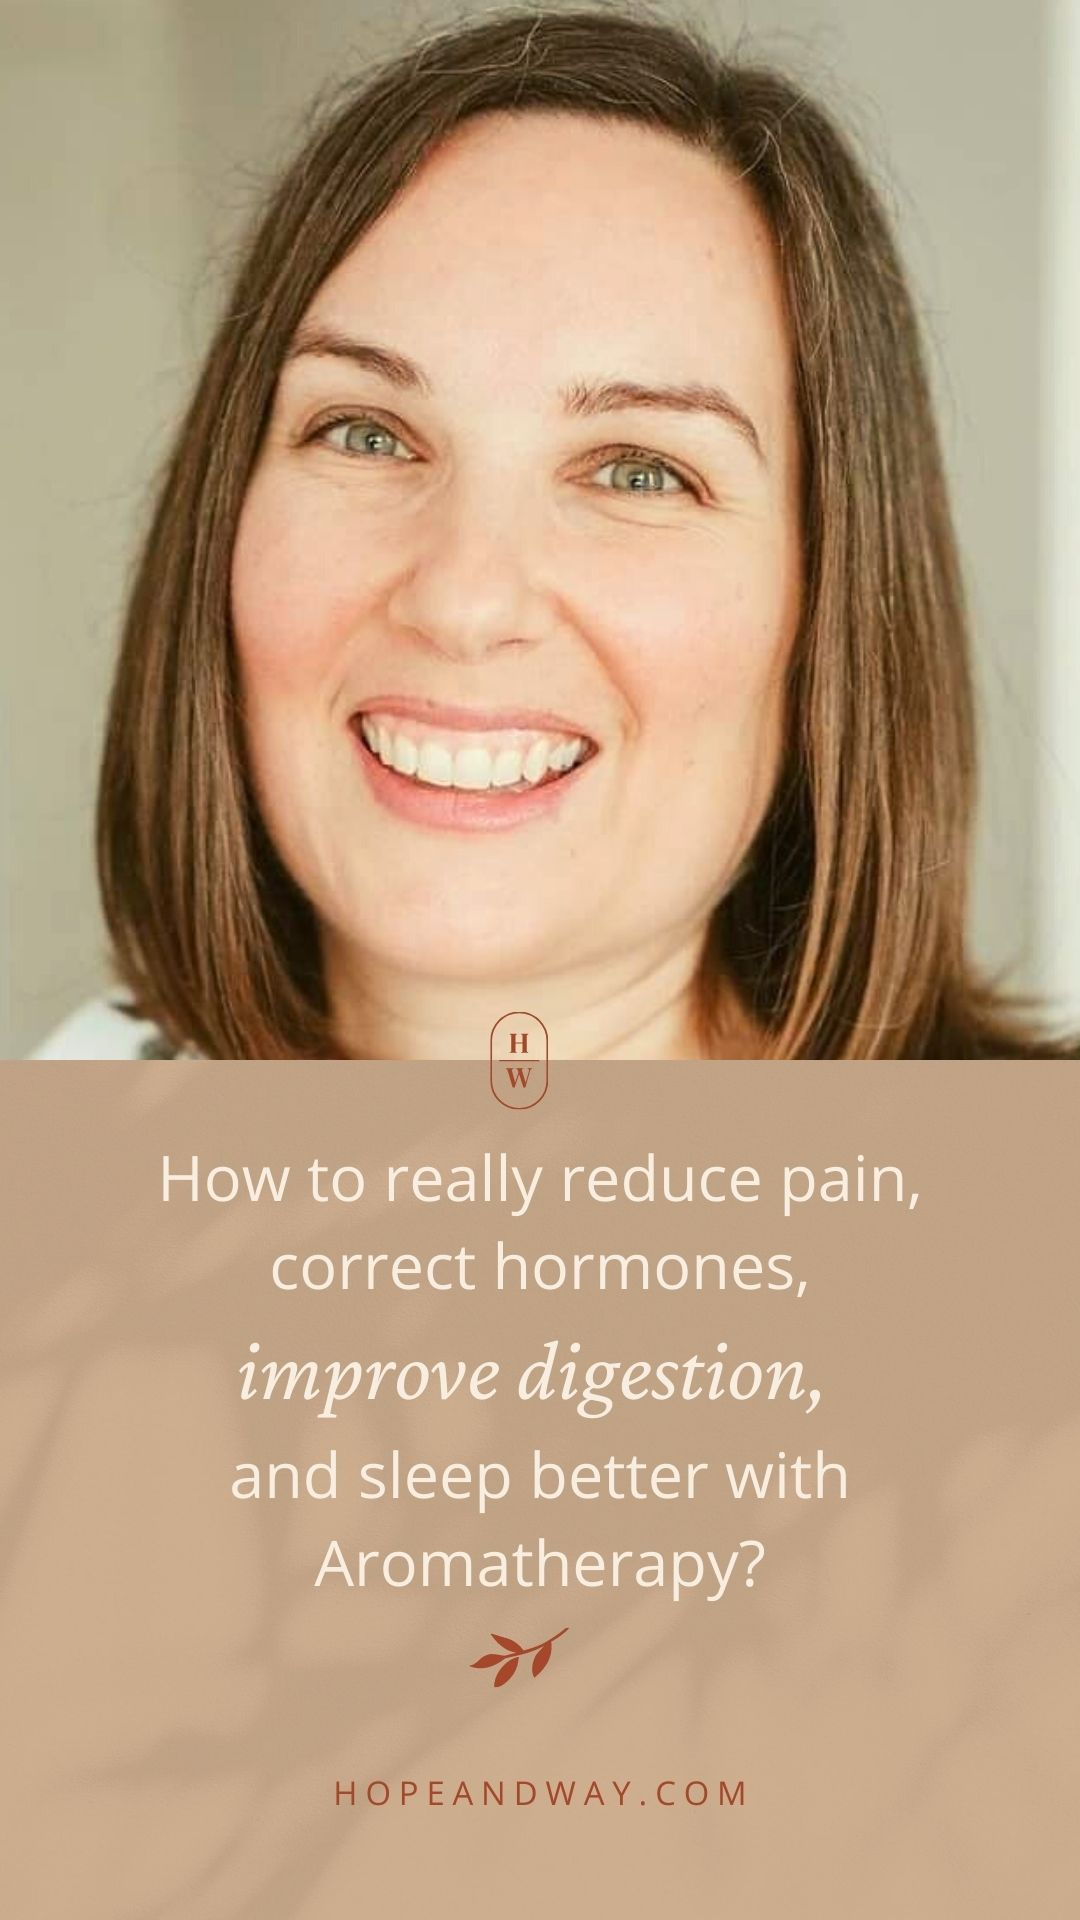 How to Really Reduce Pain, Correct Hormones, Improve Digestion, and Sleep Better with Aromatherapy Interview with Amy Rempel